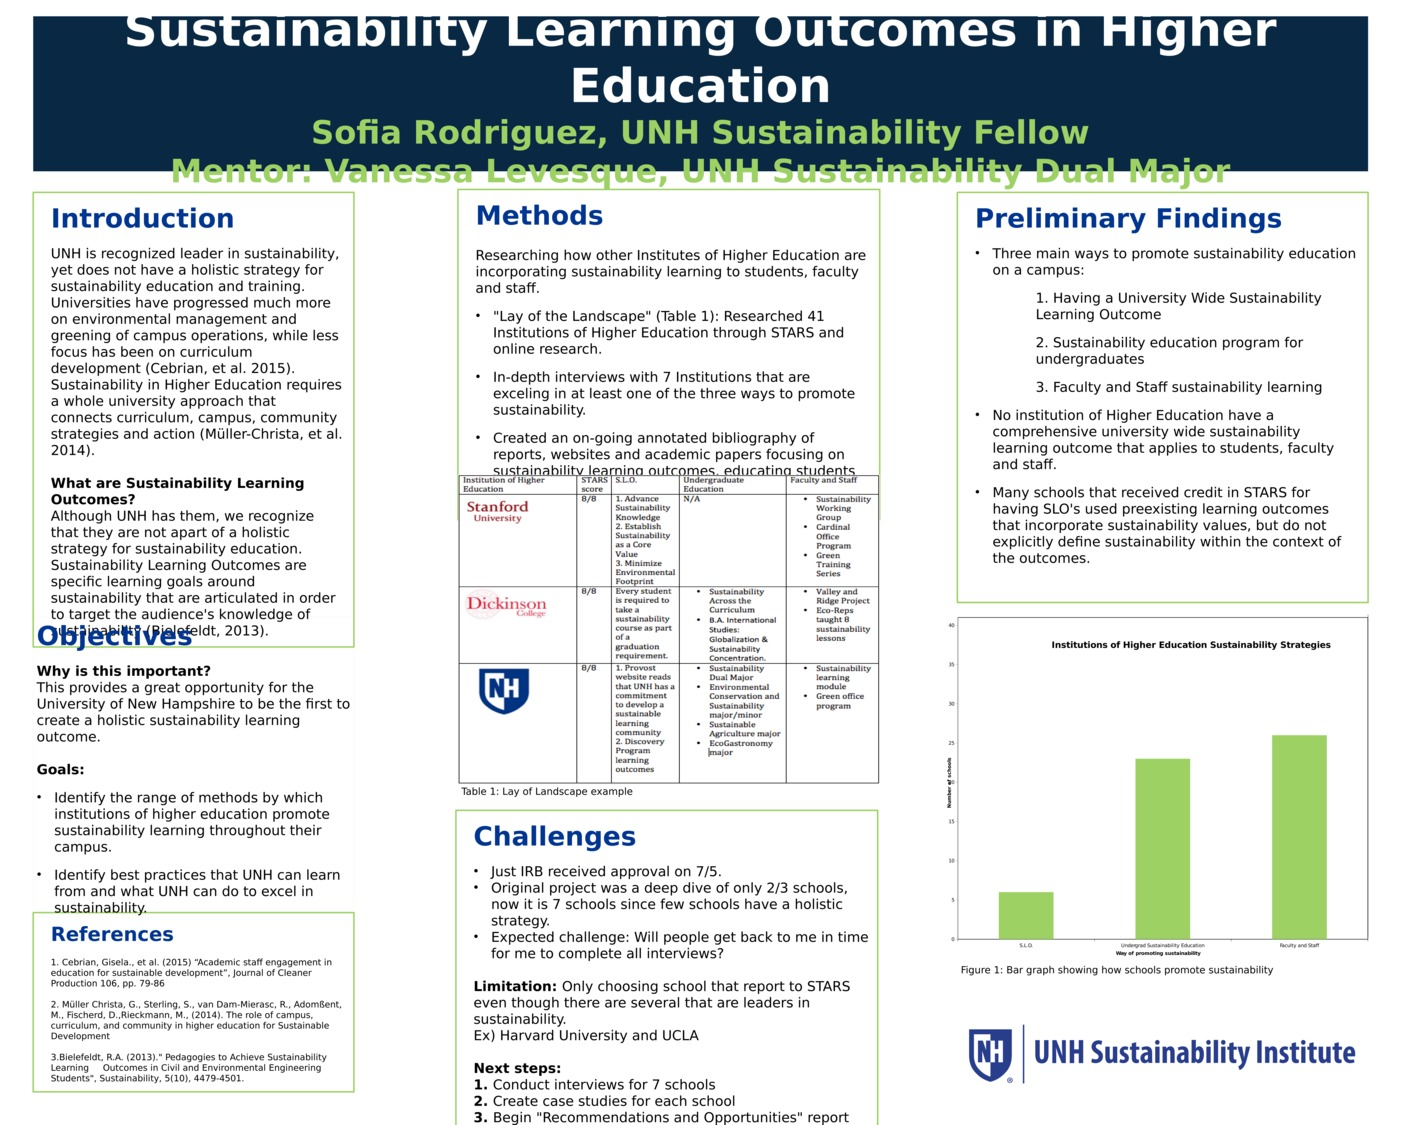 Sustainability Learning Outcomes In Higher Education by sr2008